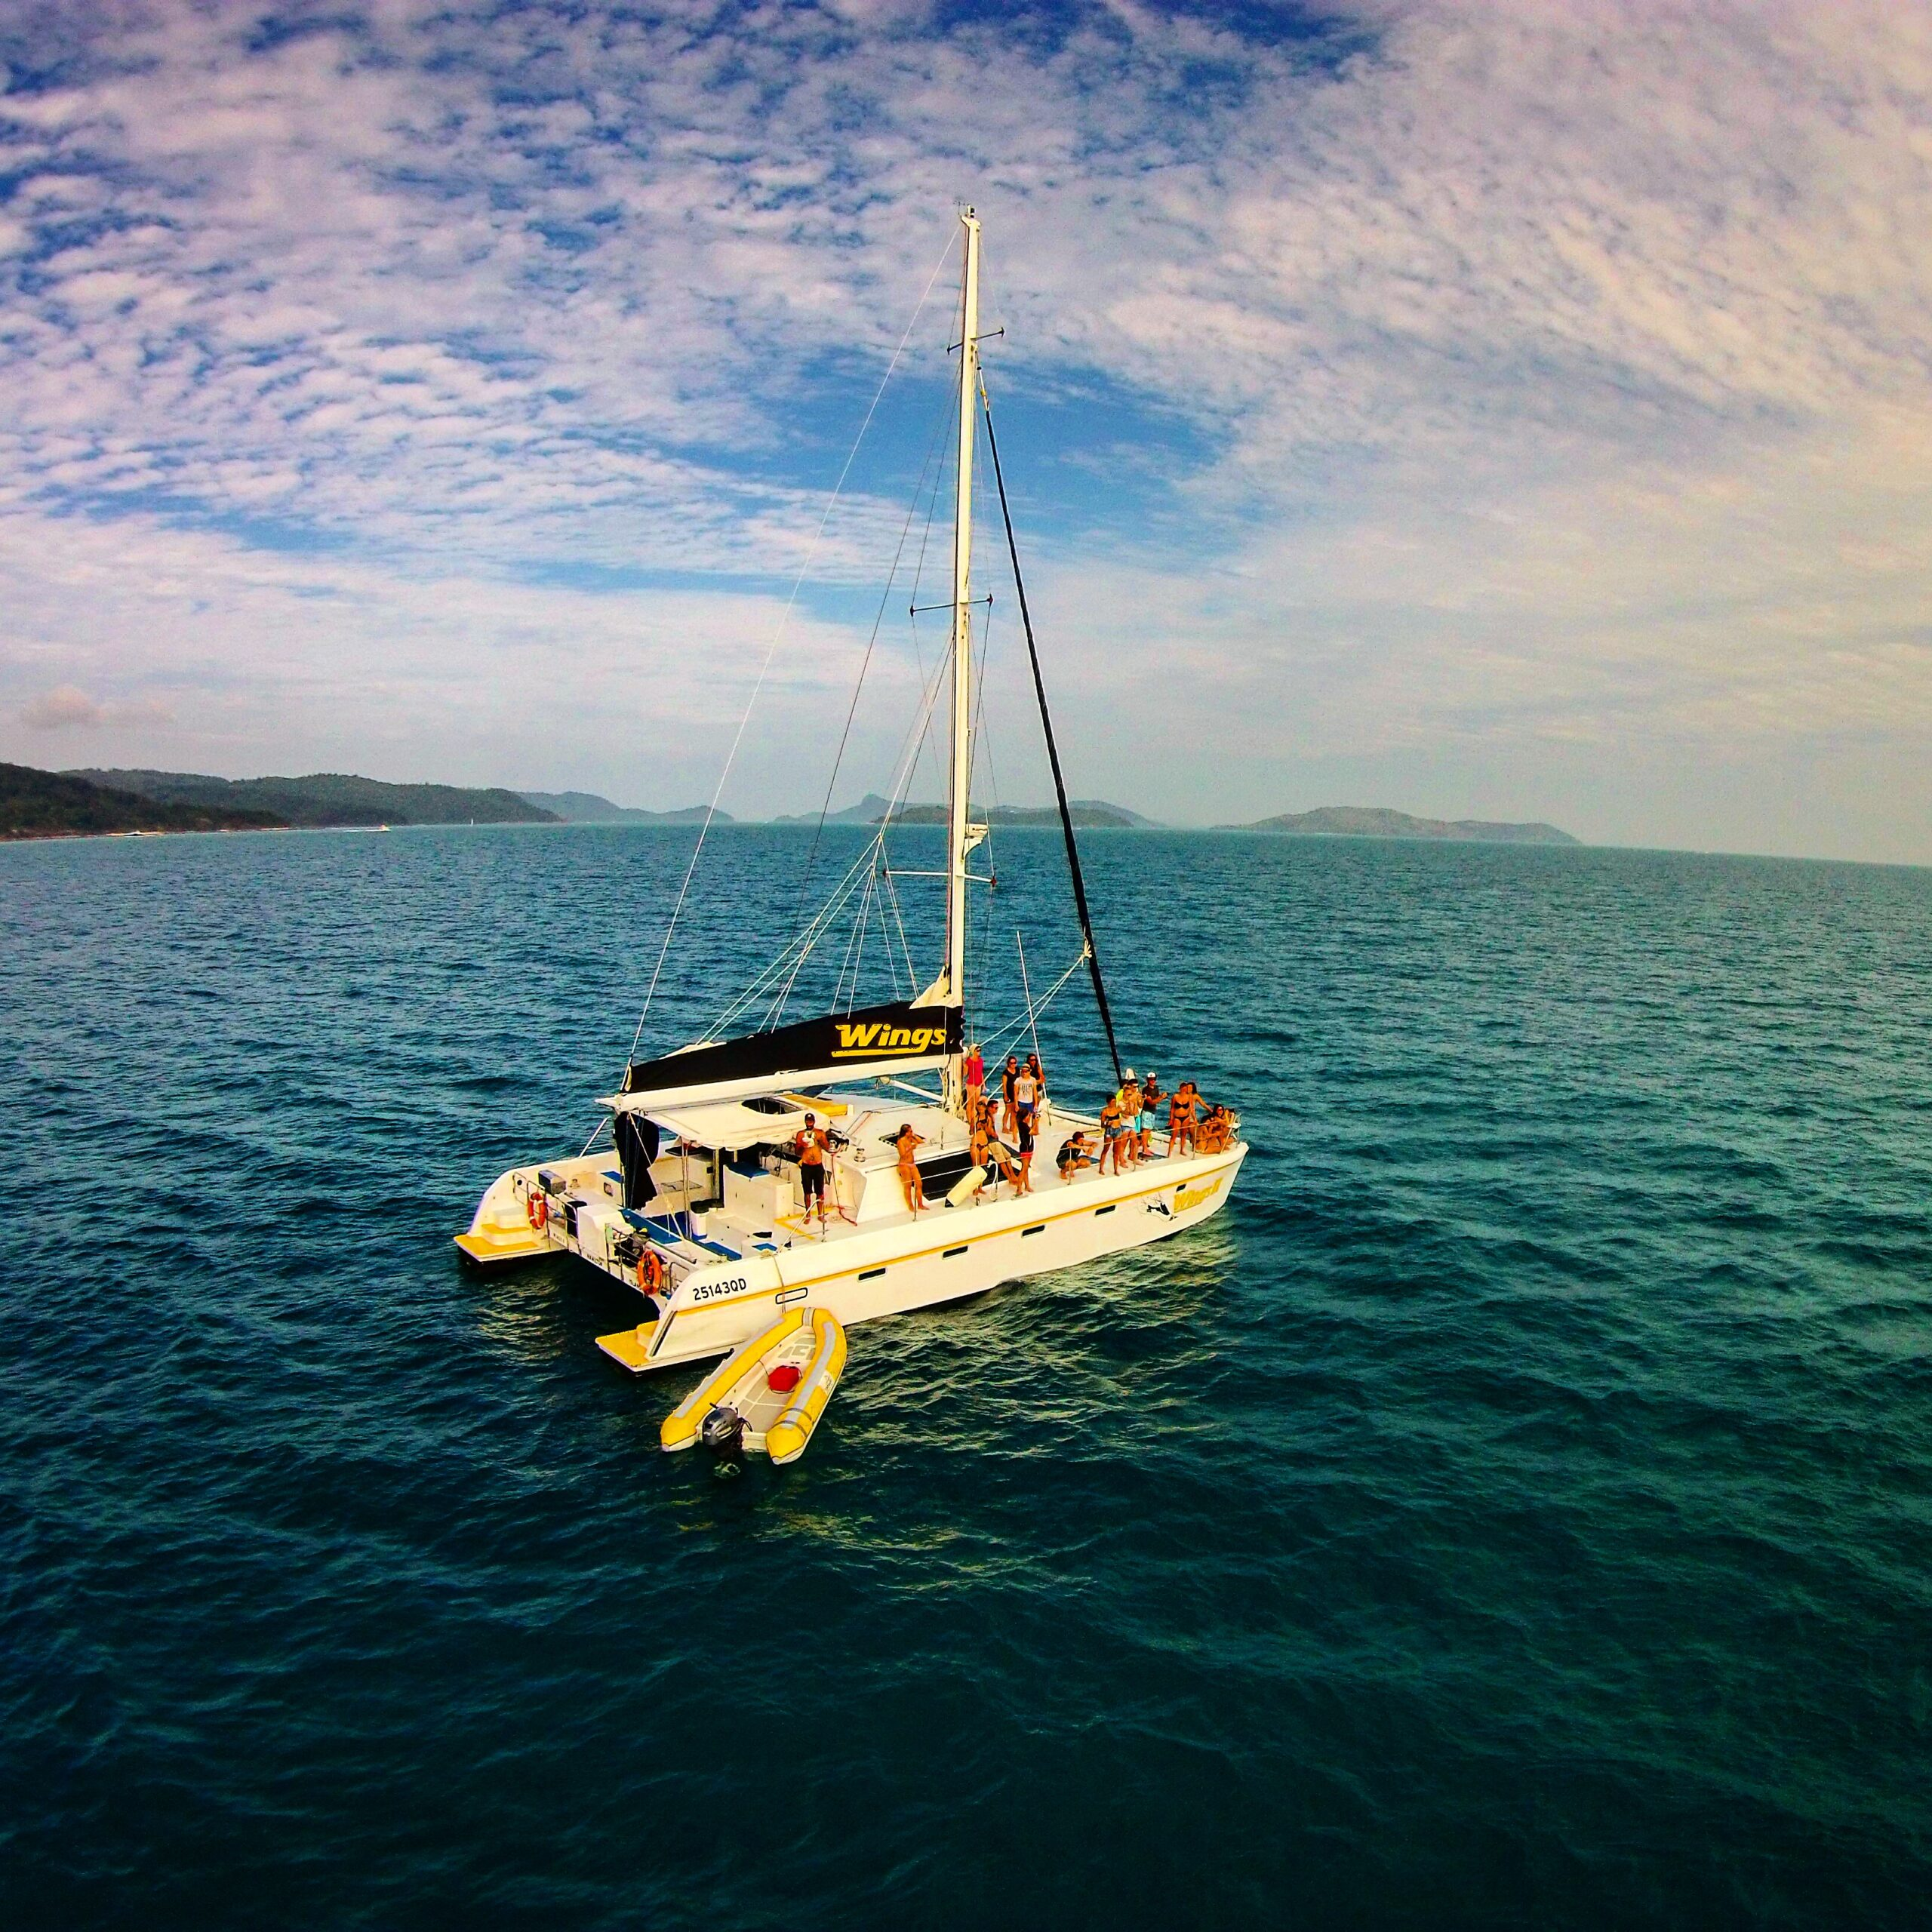 Wings Sailing Tour - 40% OFF SPECIAL - Whitsundays 2 day 2 night - Hull single